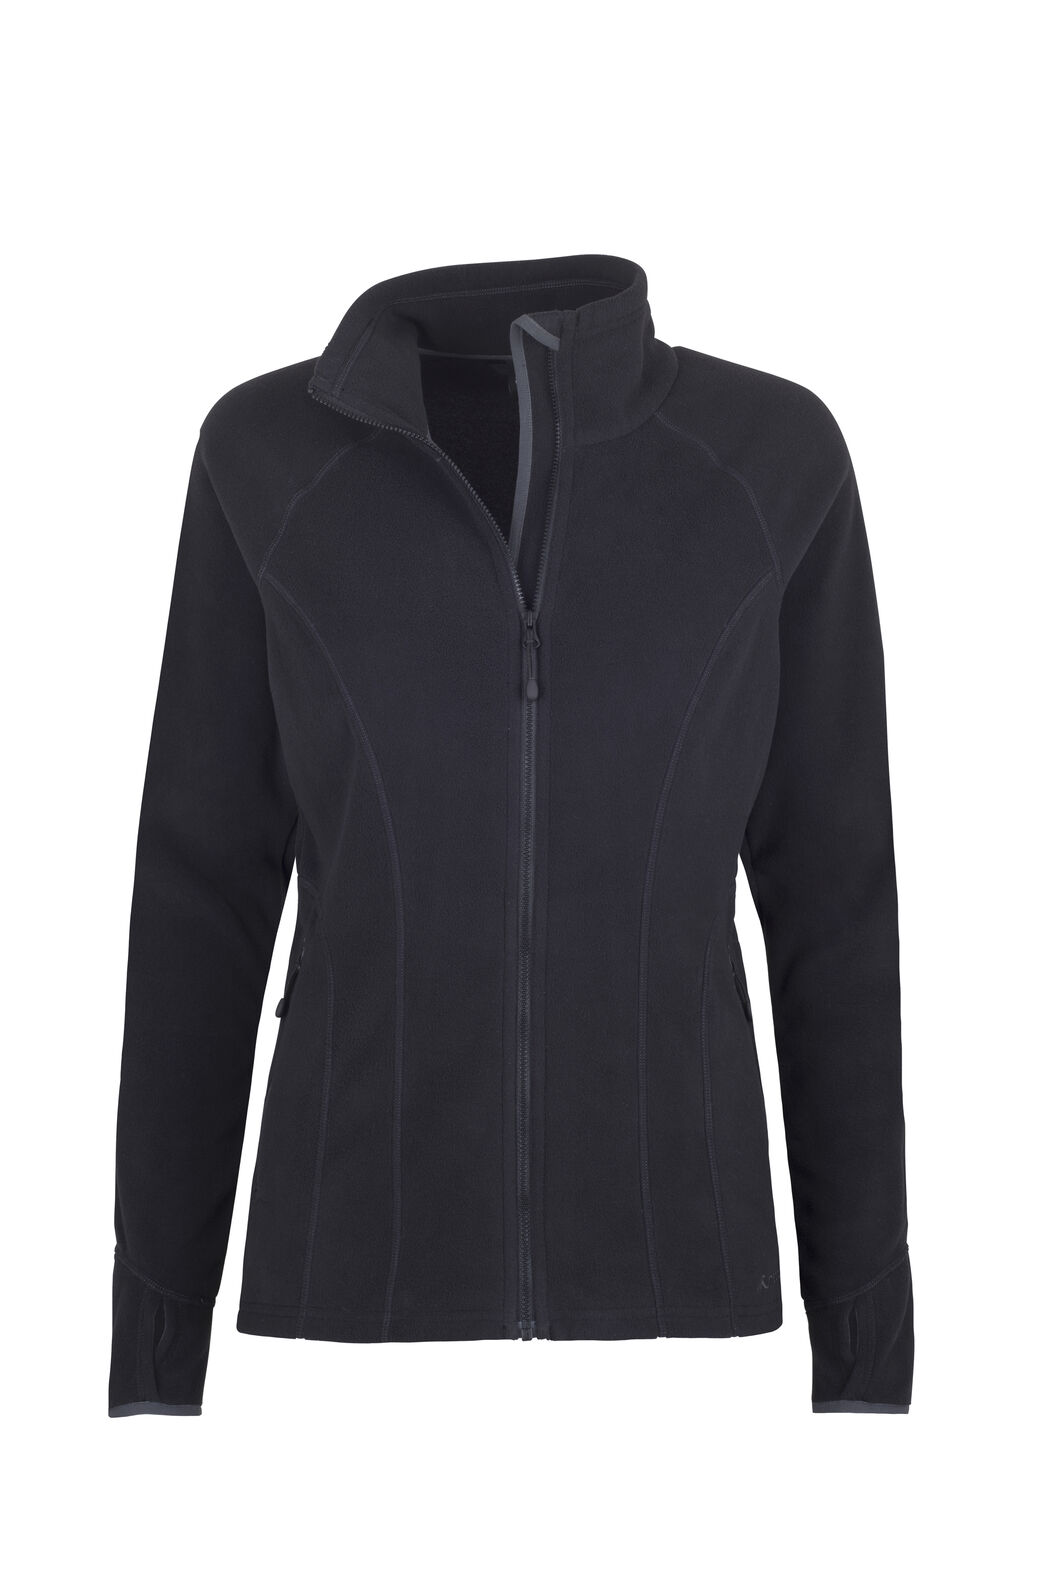 Macpac Kea Polartec® Micro Fleece® Jacket - Women's, Black, hi-res